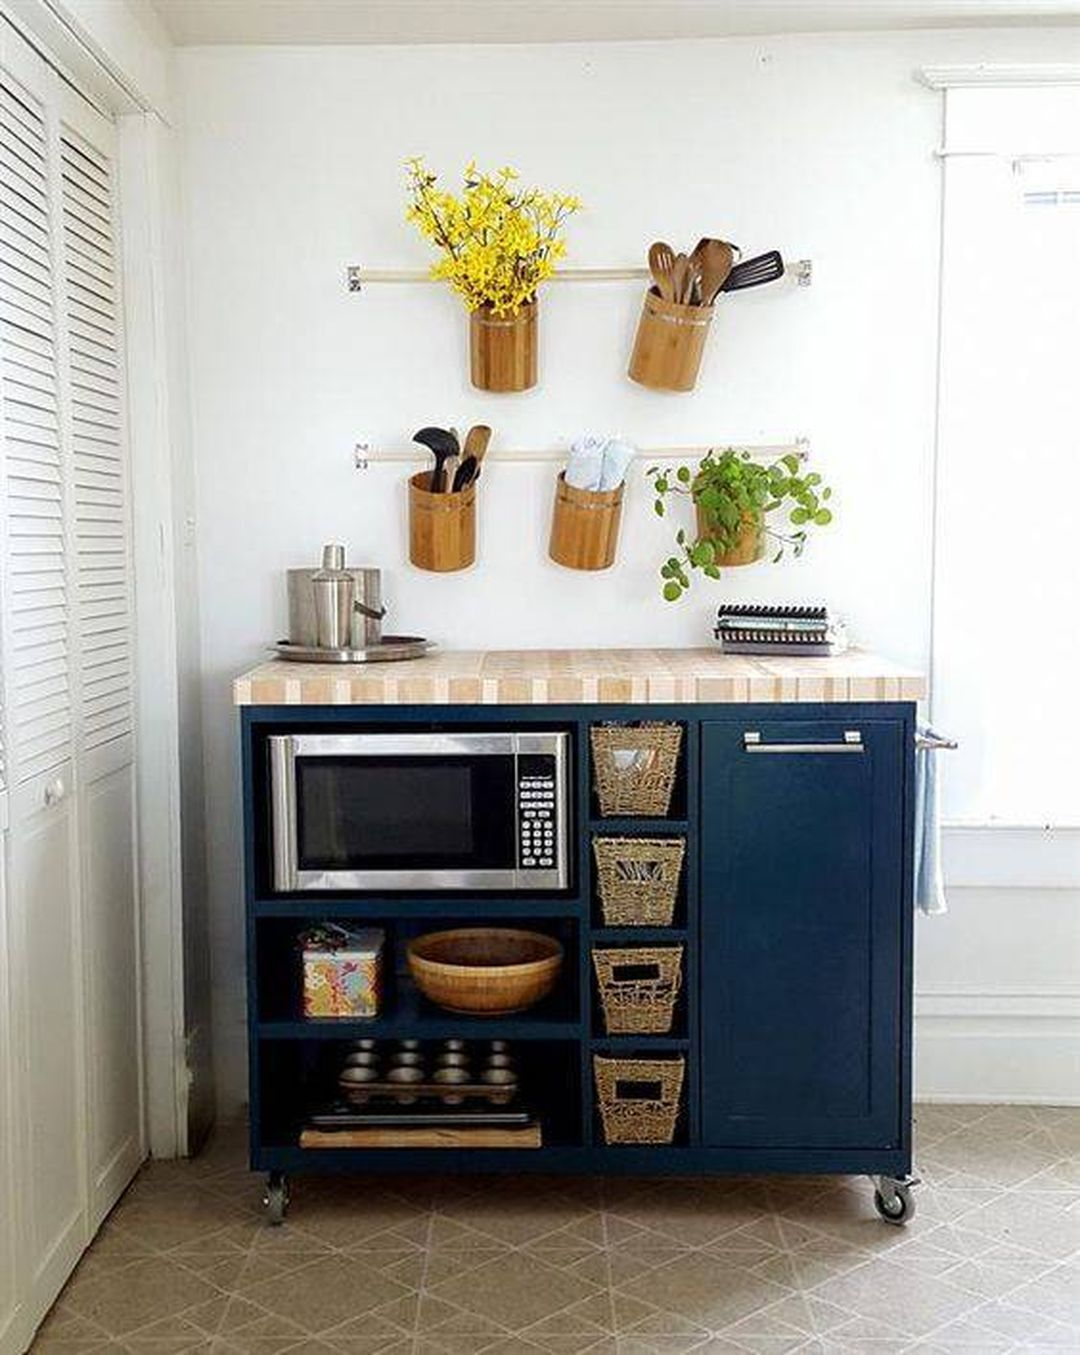 Diy Small Apartment Decorating Ideas On A Budget 70 Small Apartment Kitchen Decor Apartment Kitchen Organization Kitchen Decor Apartment